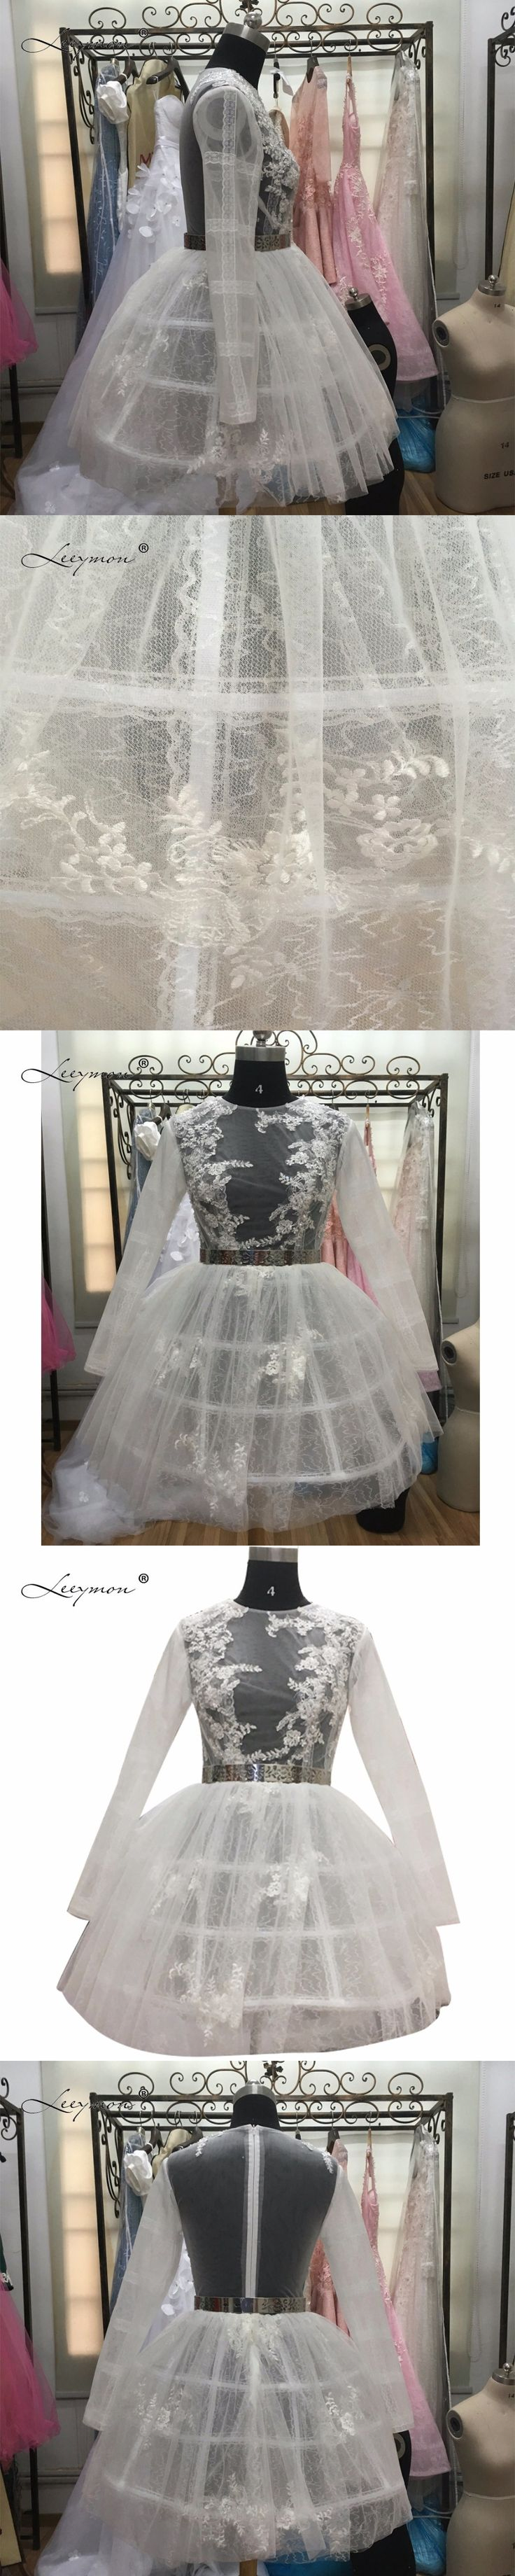 Long Sleeves Lace Cocktail Dress 2017 Sexy See Through Ball Gown Mini Short White Lace Cocktail Dress Vestidos De Coctel CC02